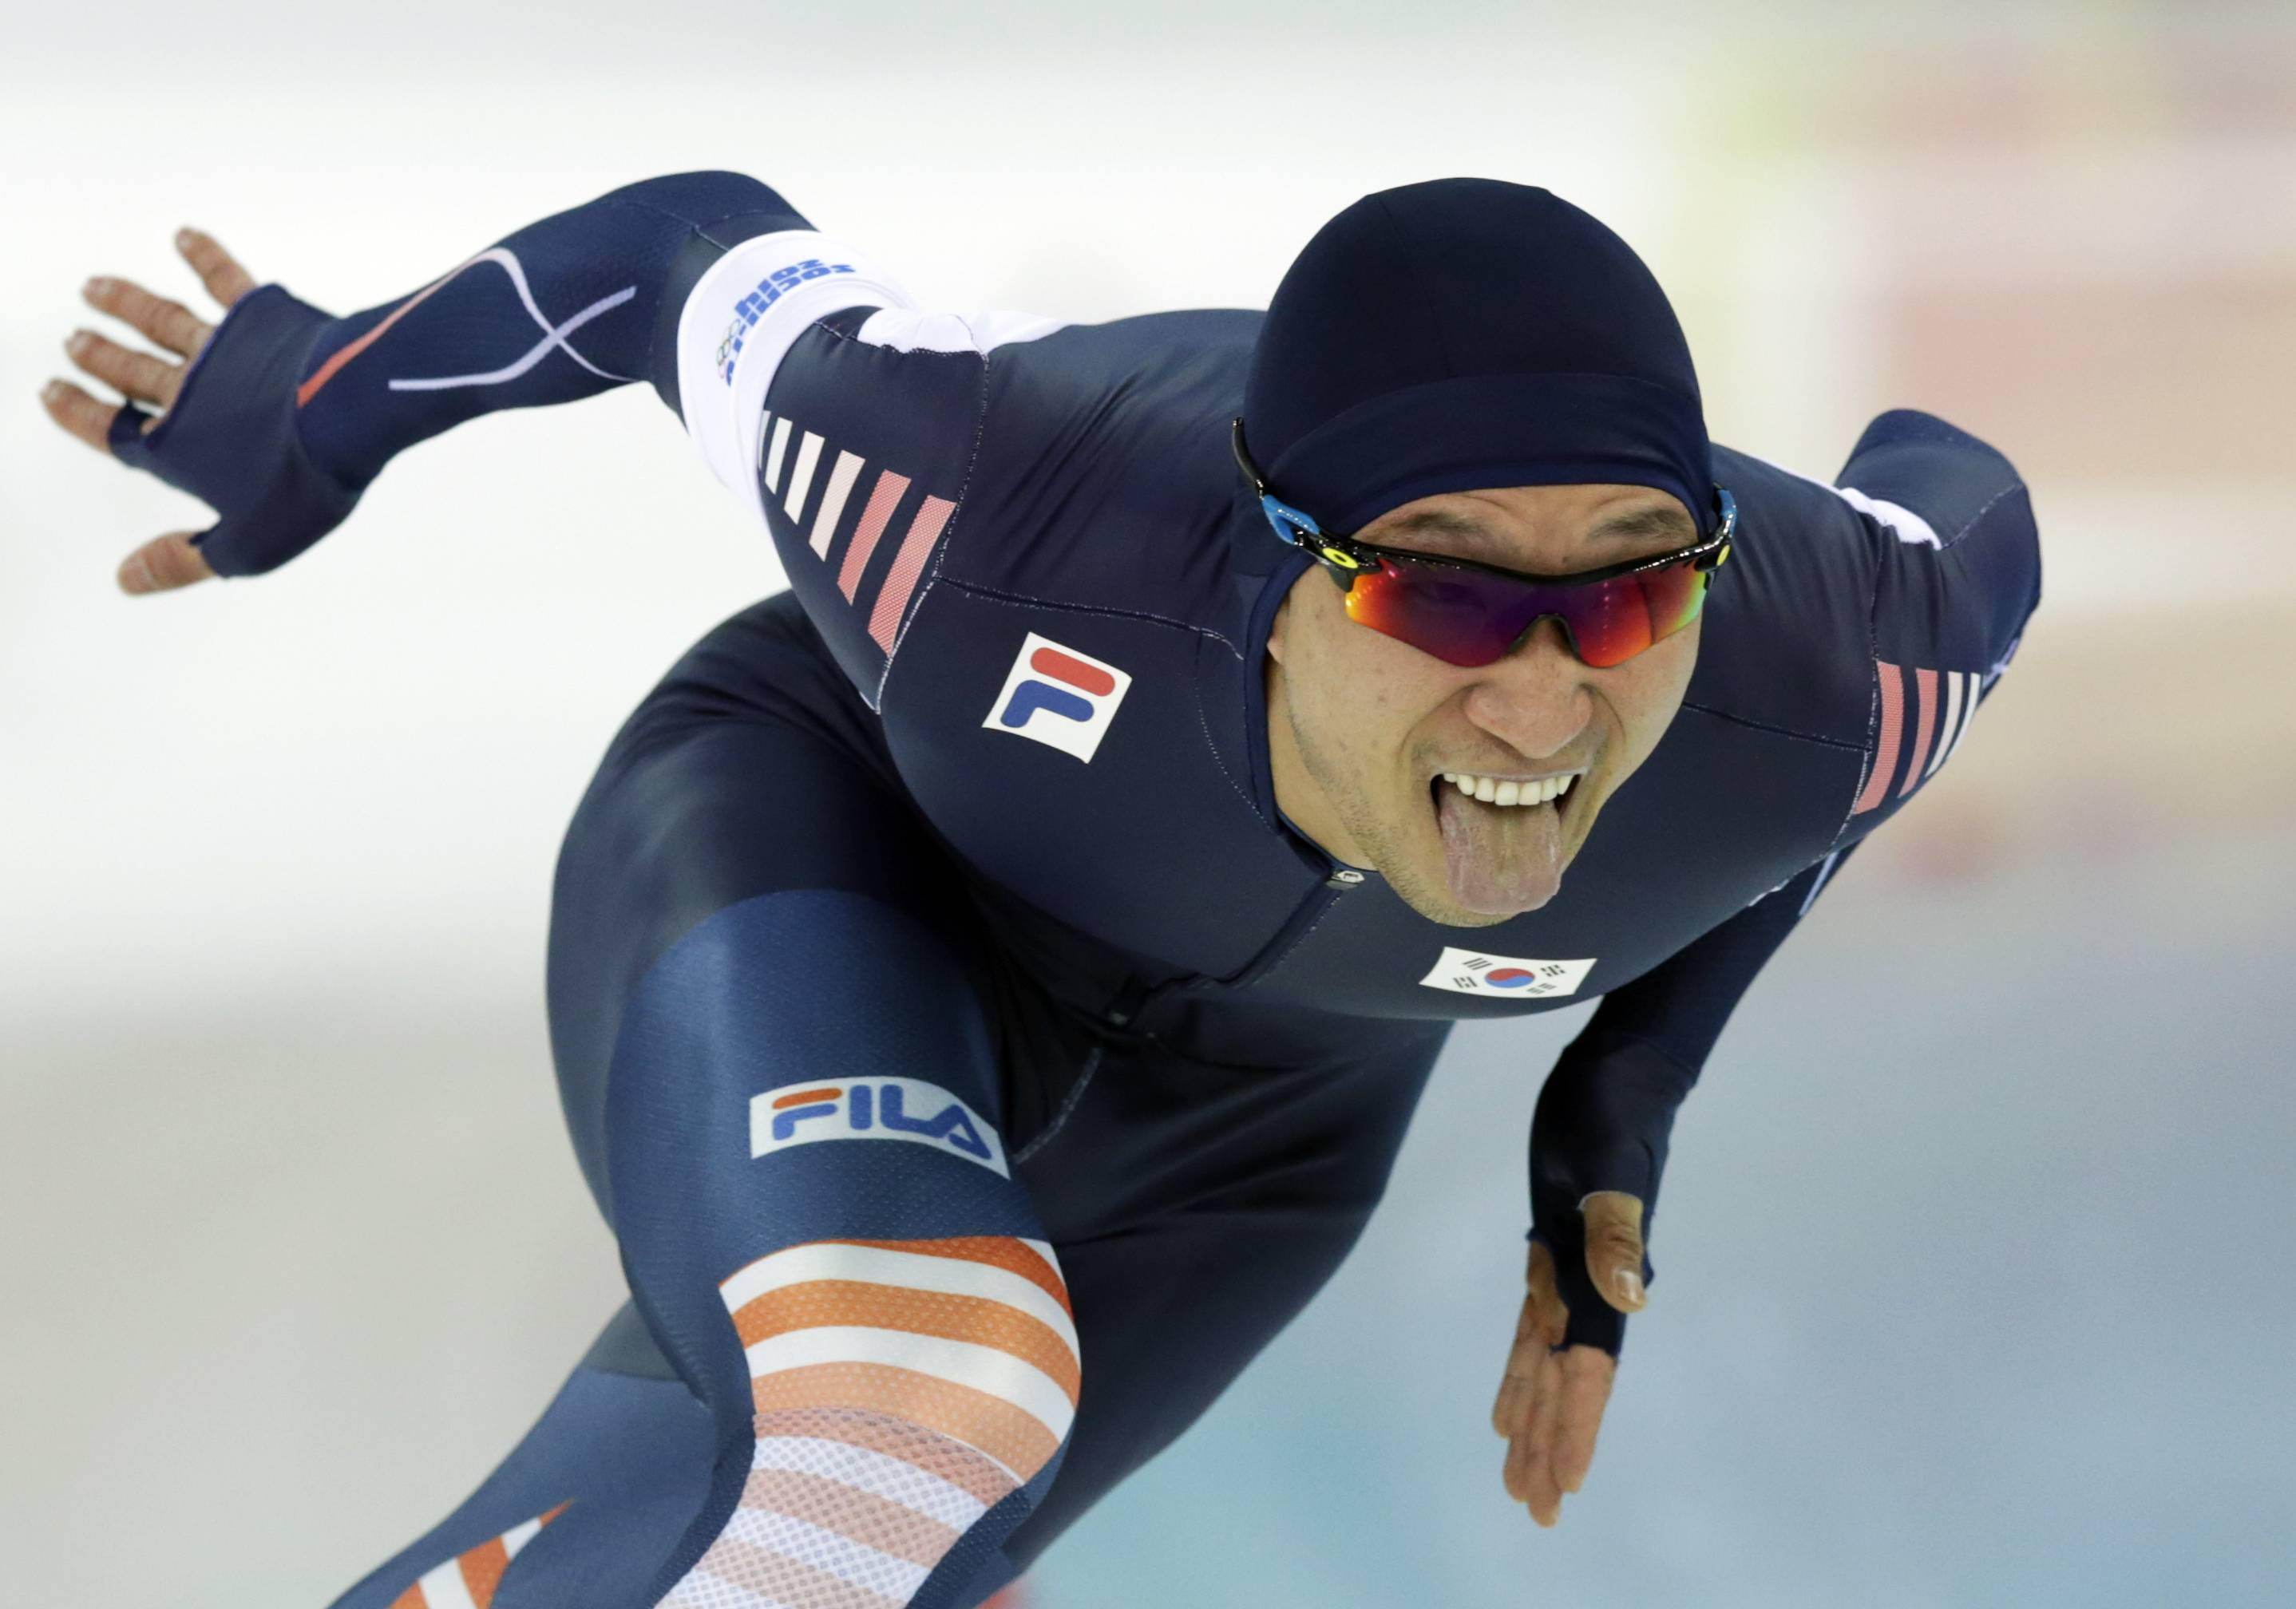 South Korea's Lee Kyou-hyuk competes during the second heat of the men's 500-meter speedskating race.